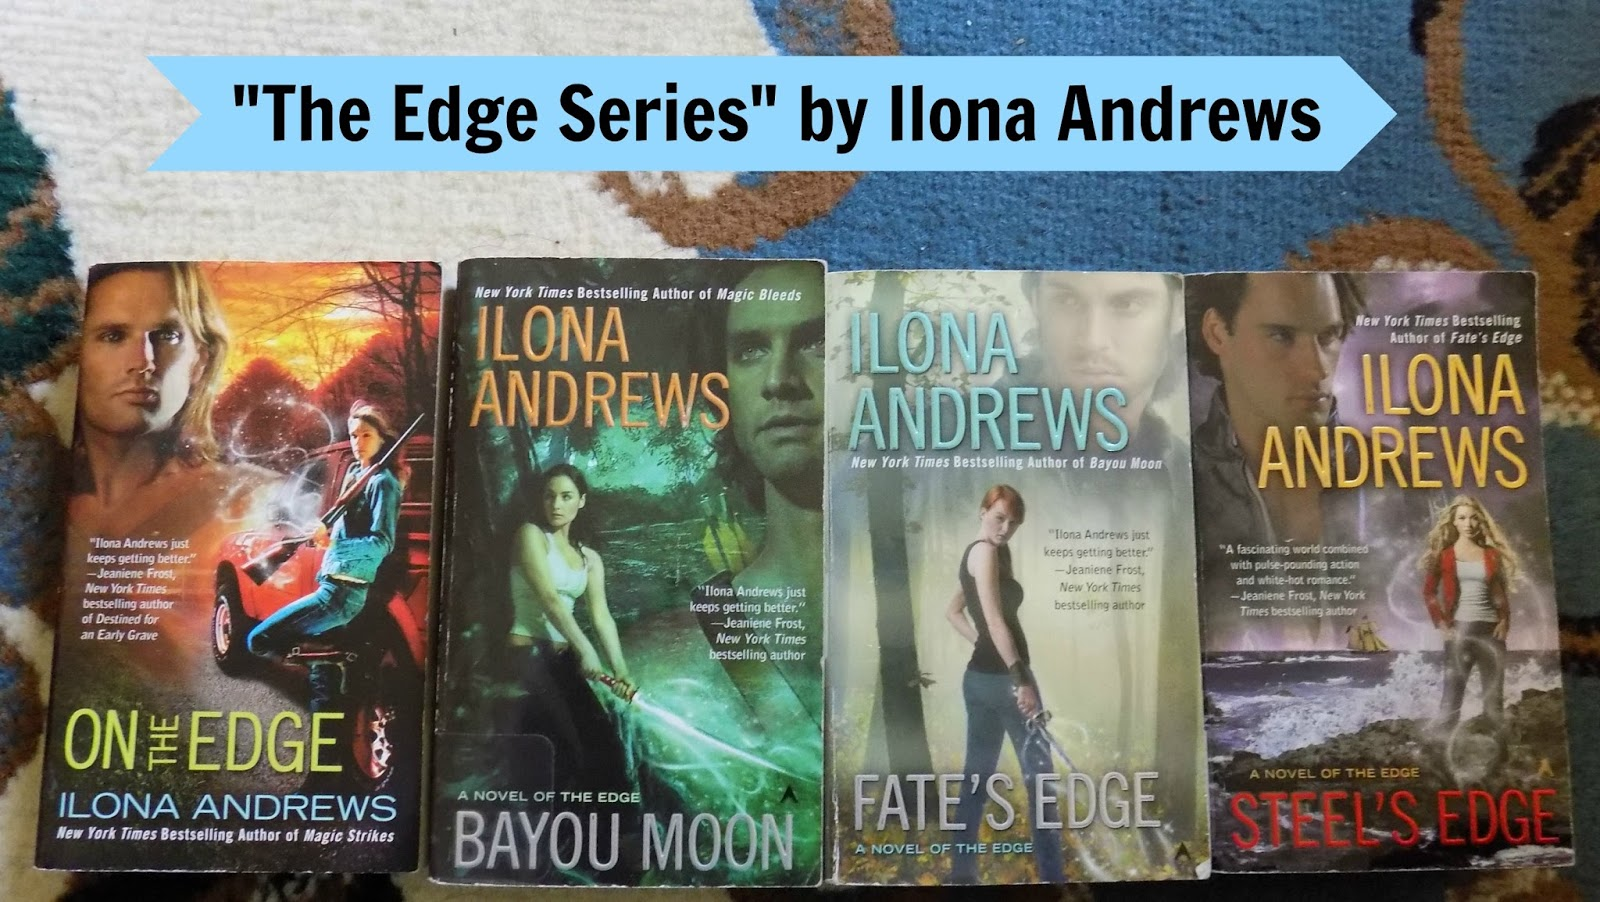 FINDING A SERIES OR AN AUTHOR: